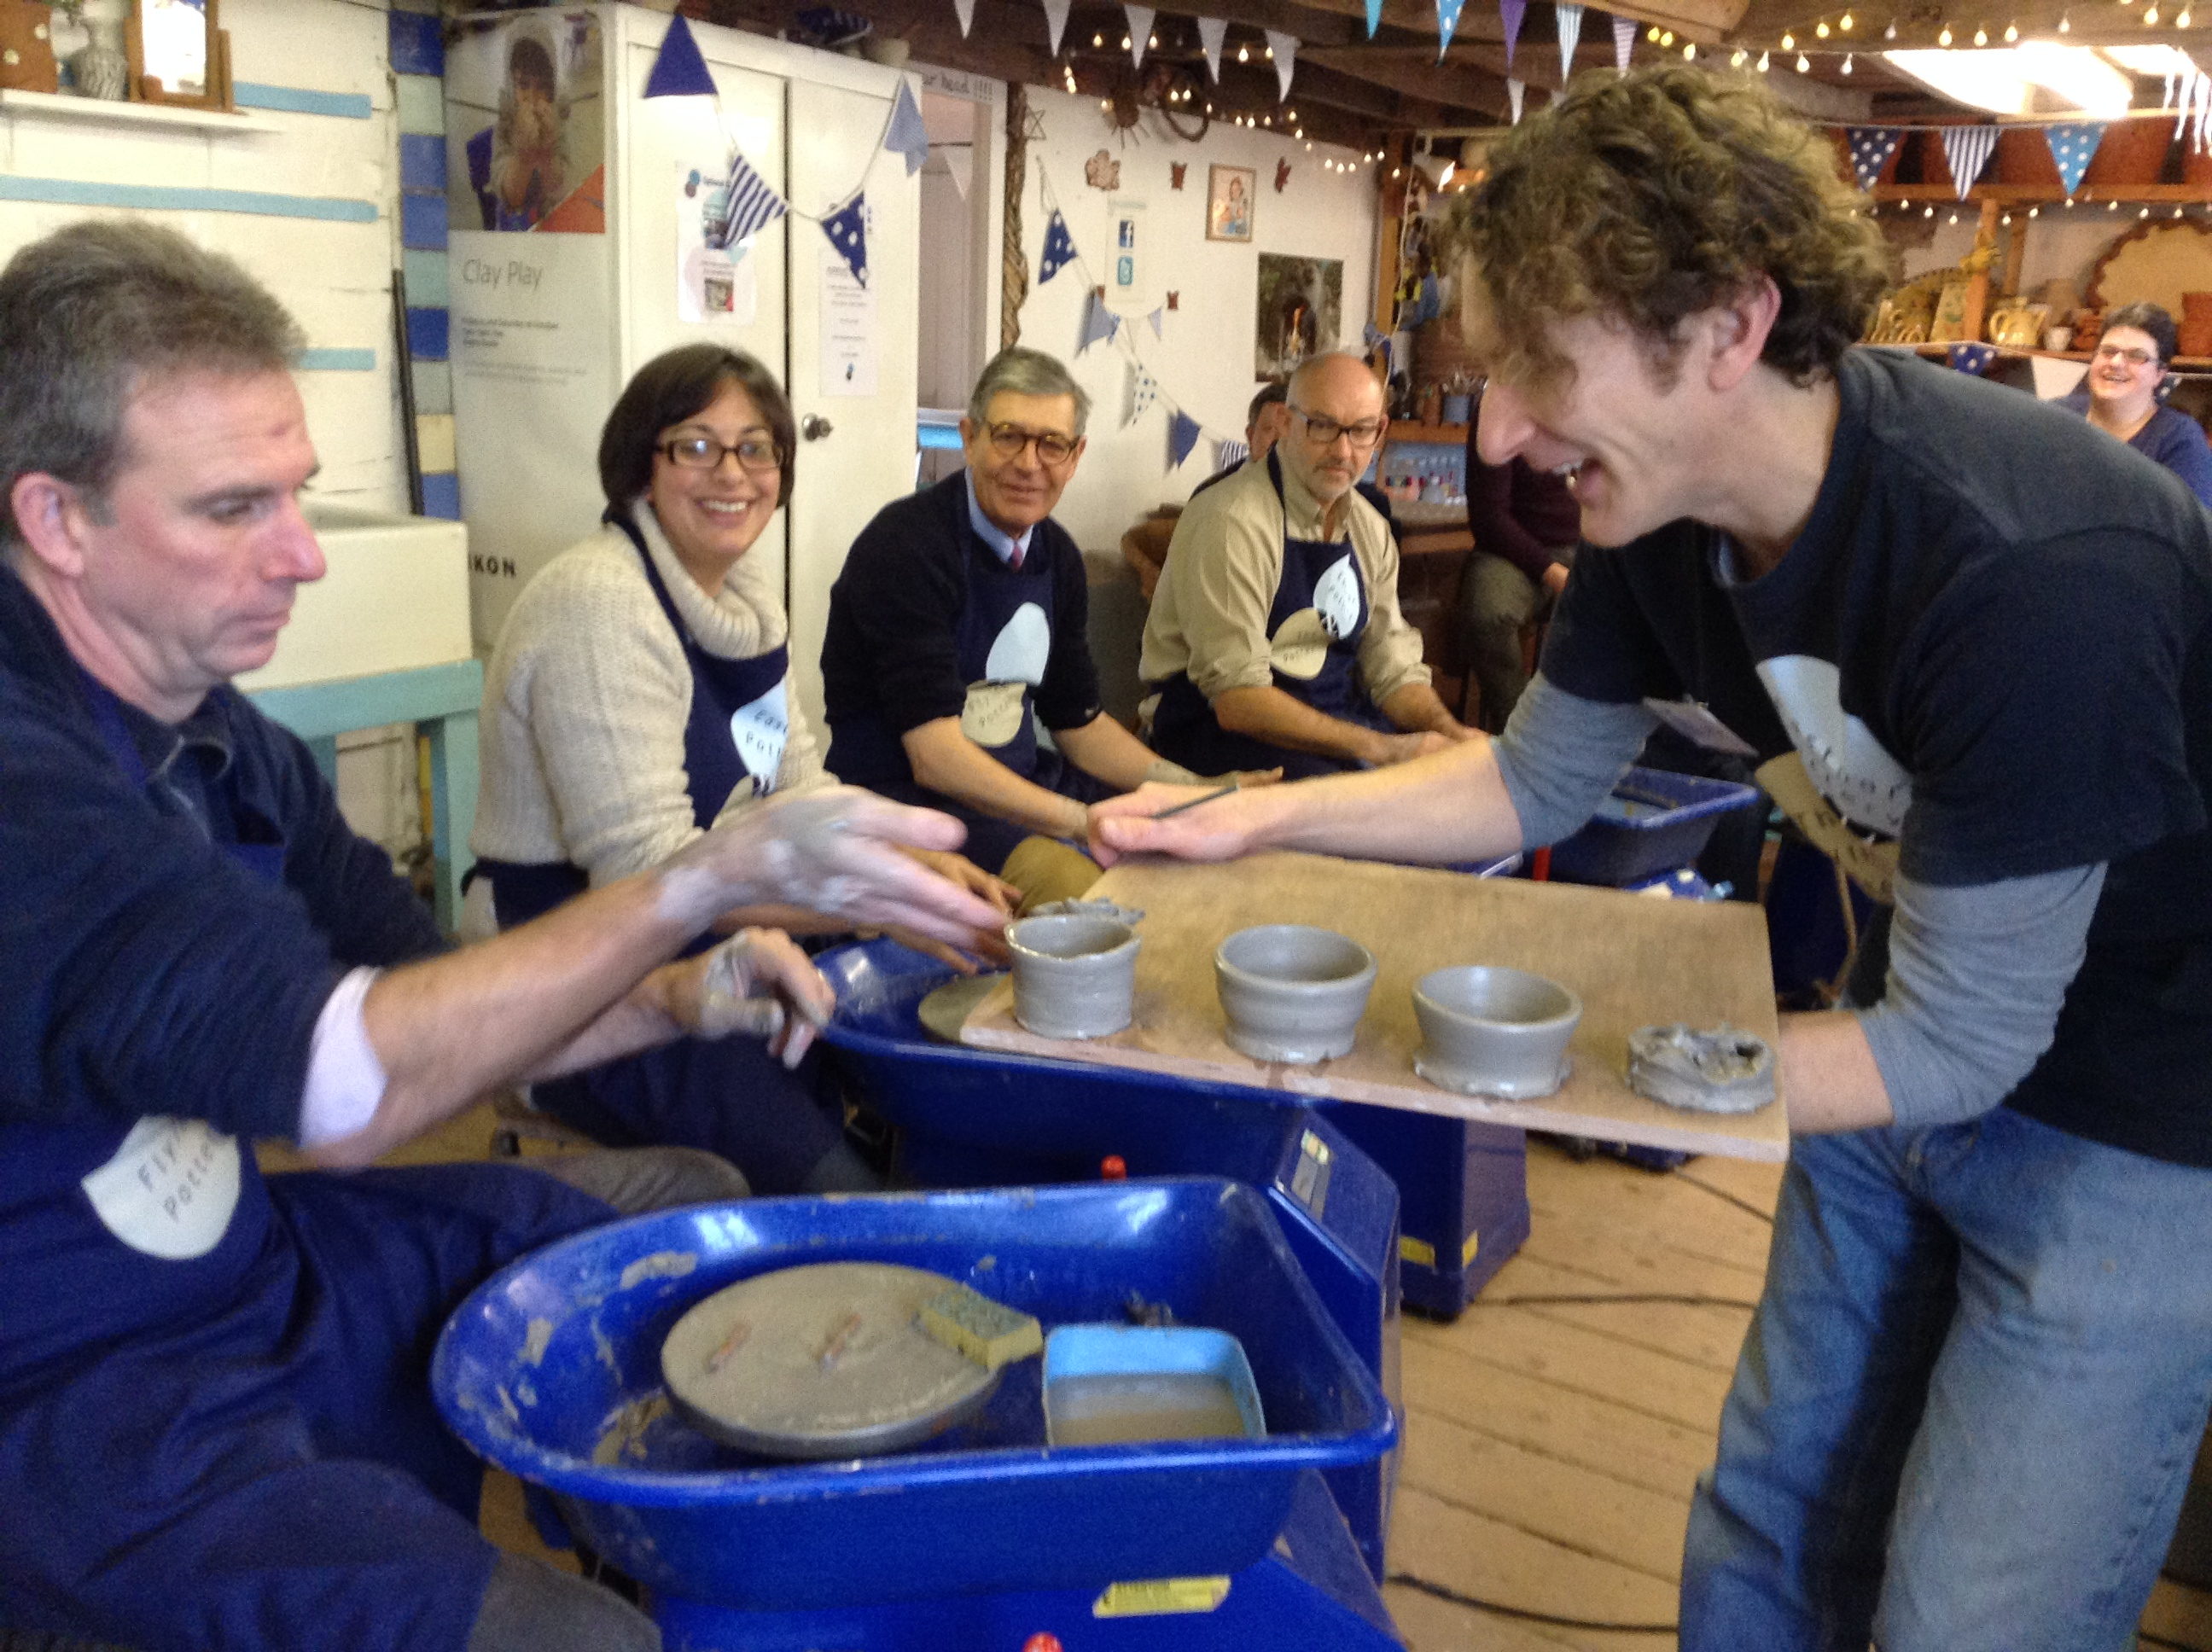 work colleagues makeing pottery on the potter's wheel at eastnor pottery